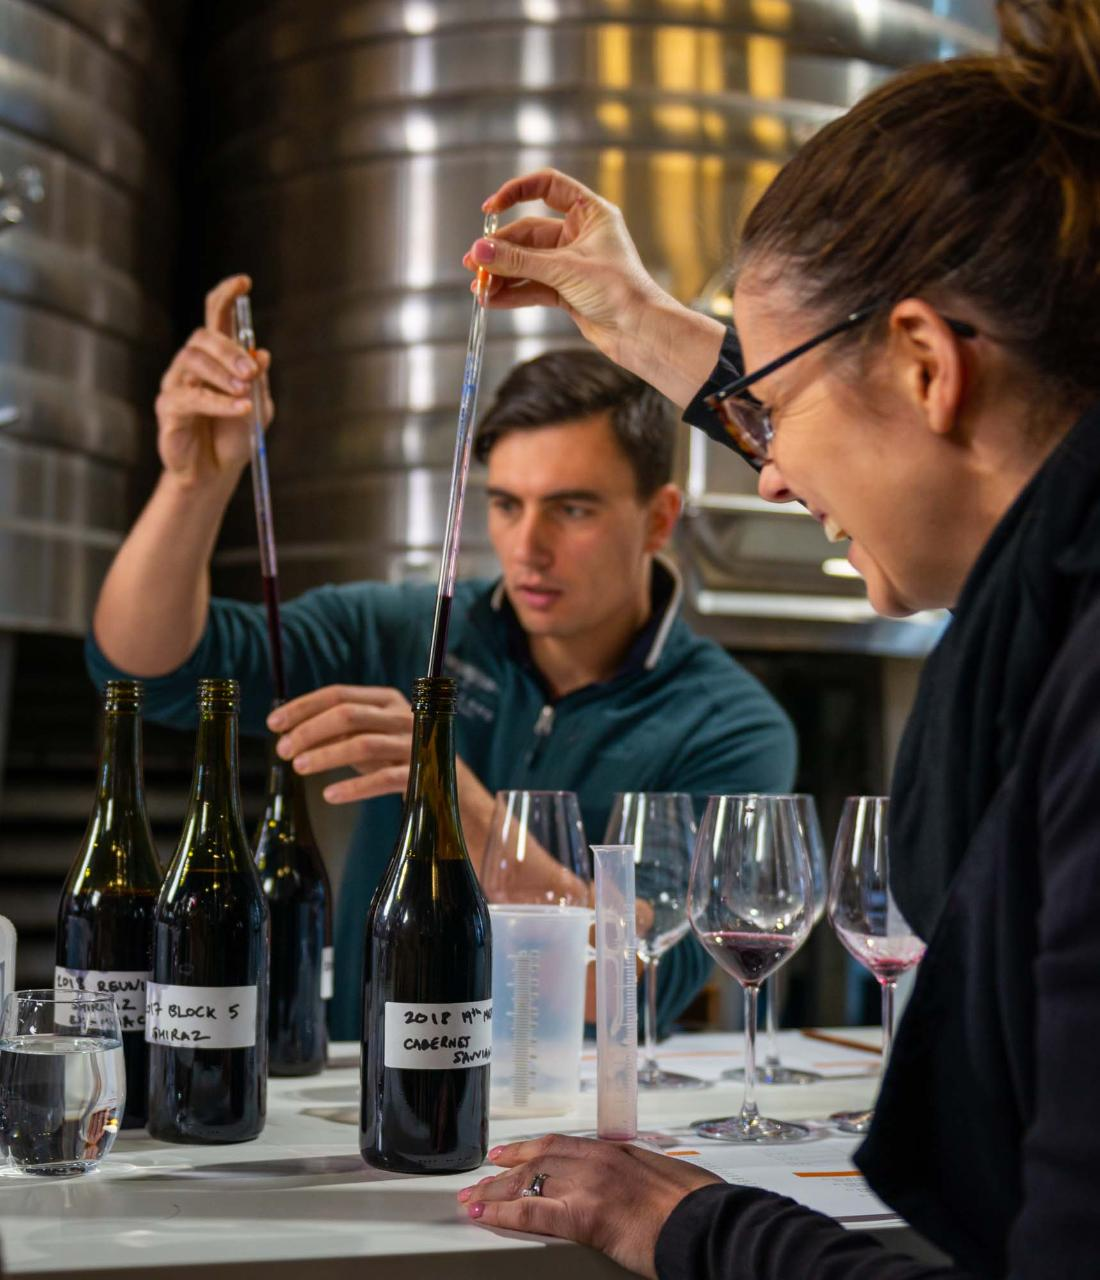 Gift Voucher - 1 Adult Winemaker's Experience